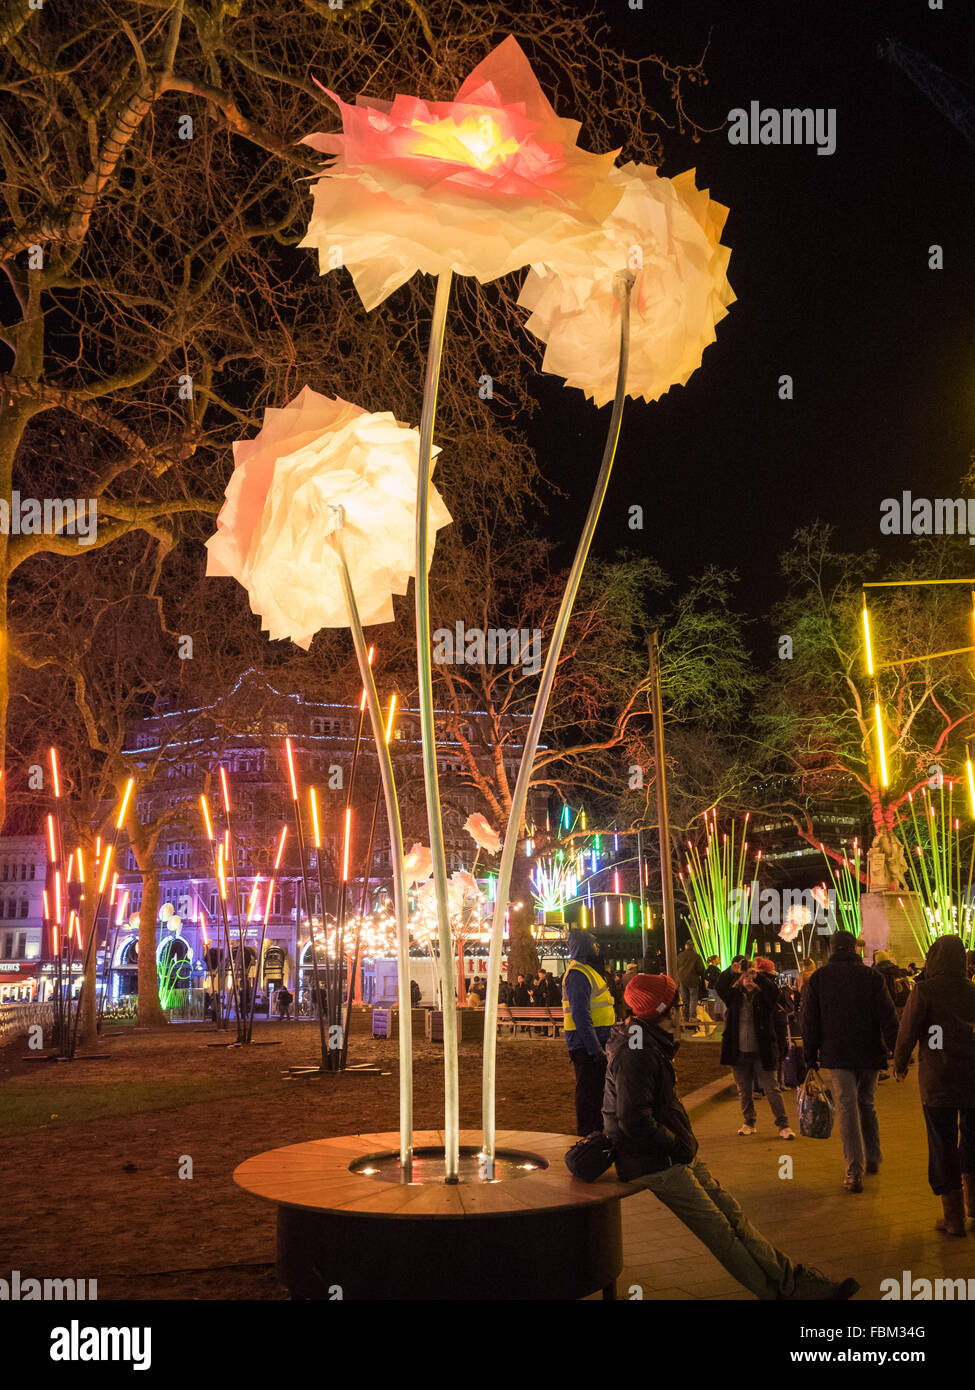 a London Lumiere flower light exhibit in Leicester Square gardens at night UK - Stock Image